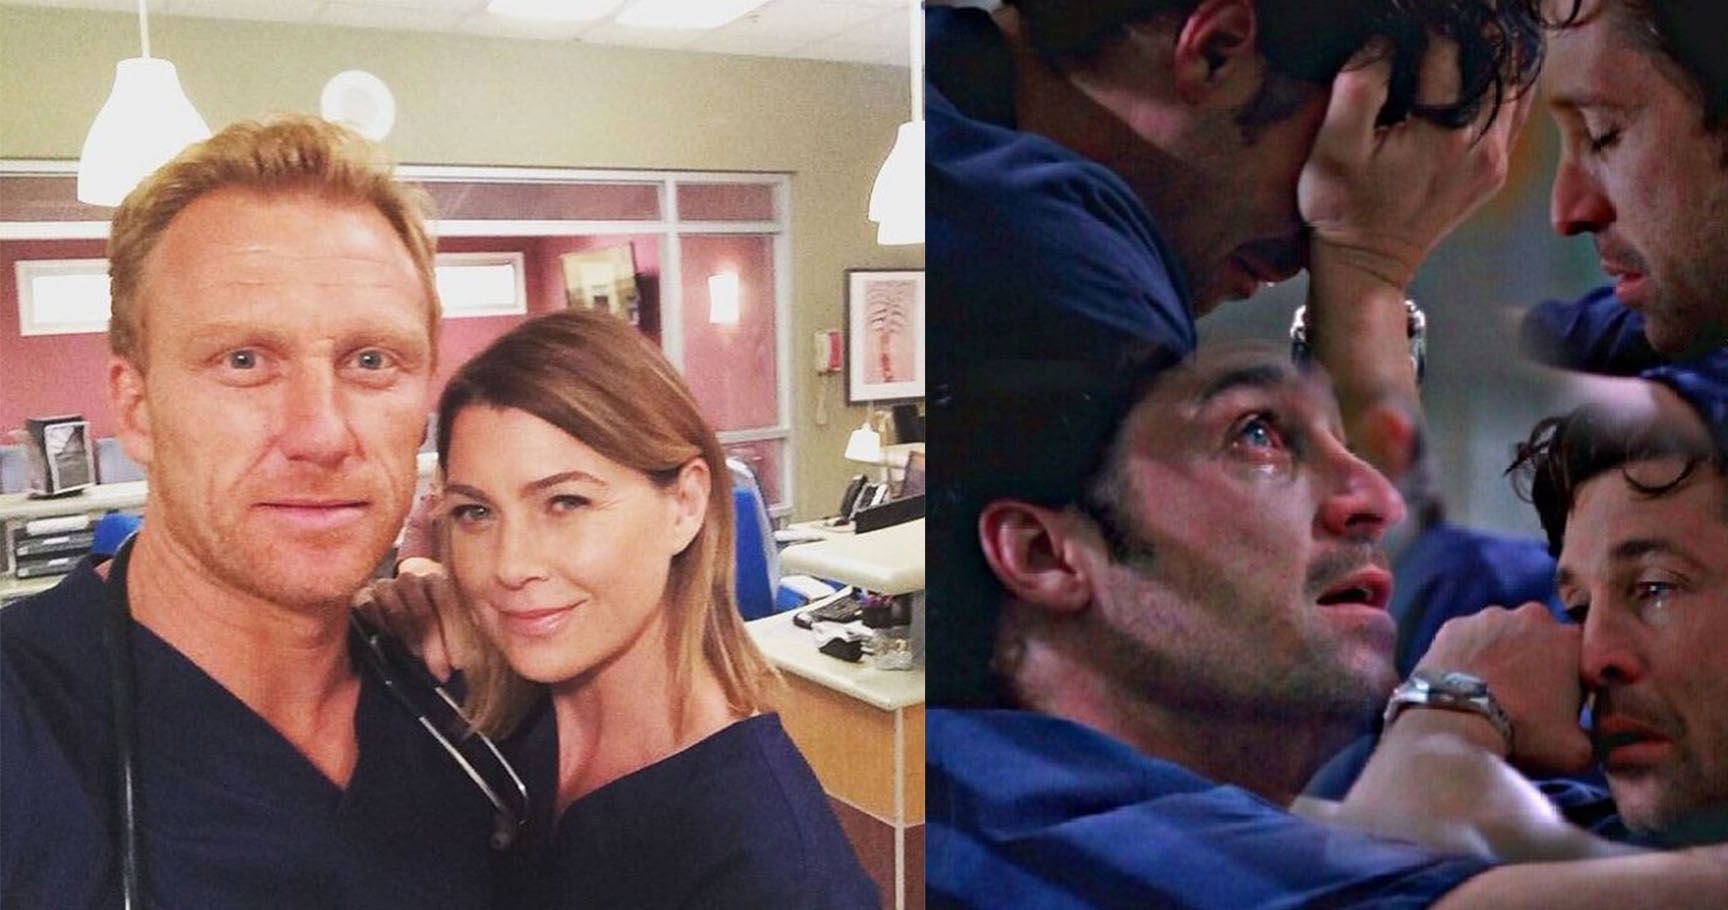 15 'Grey's Anatomy' Couples That Would Have Worked Better Than Derek & Meredith